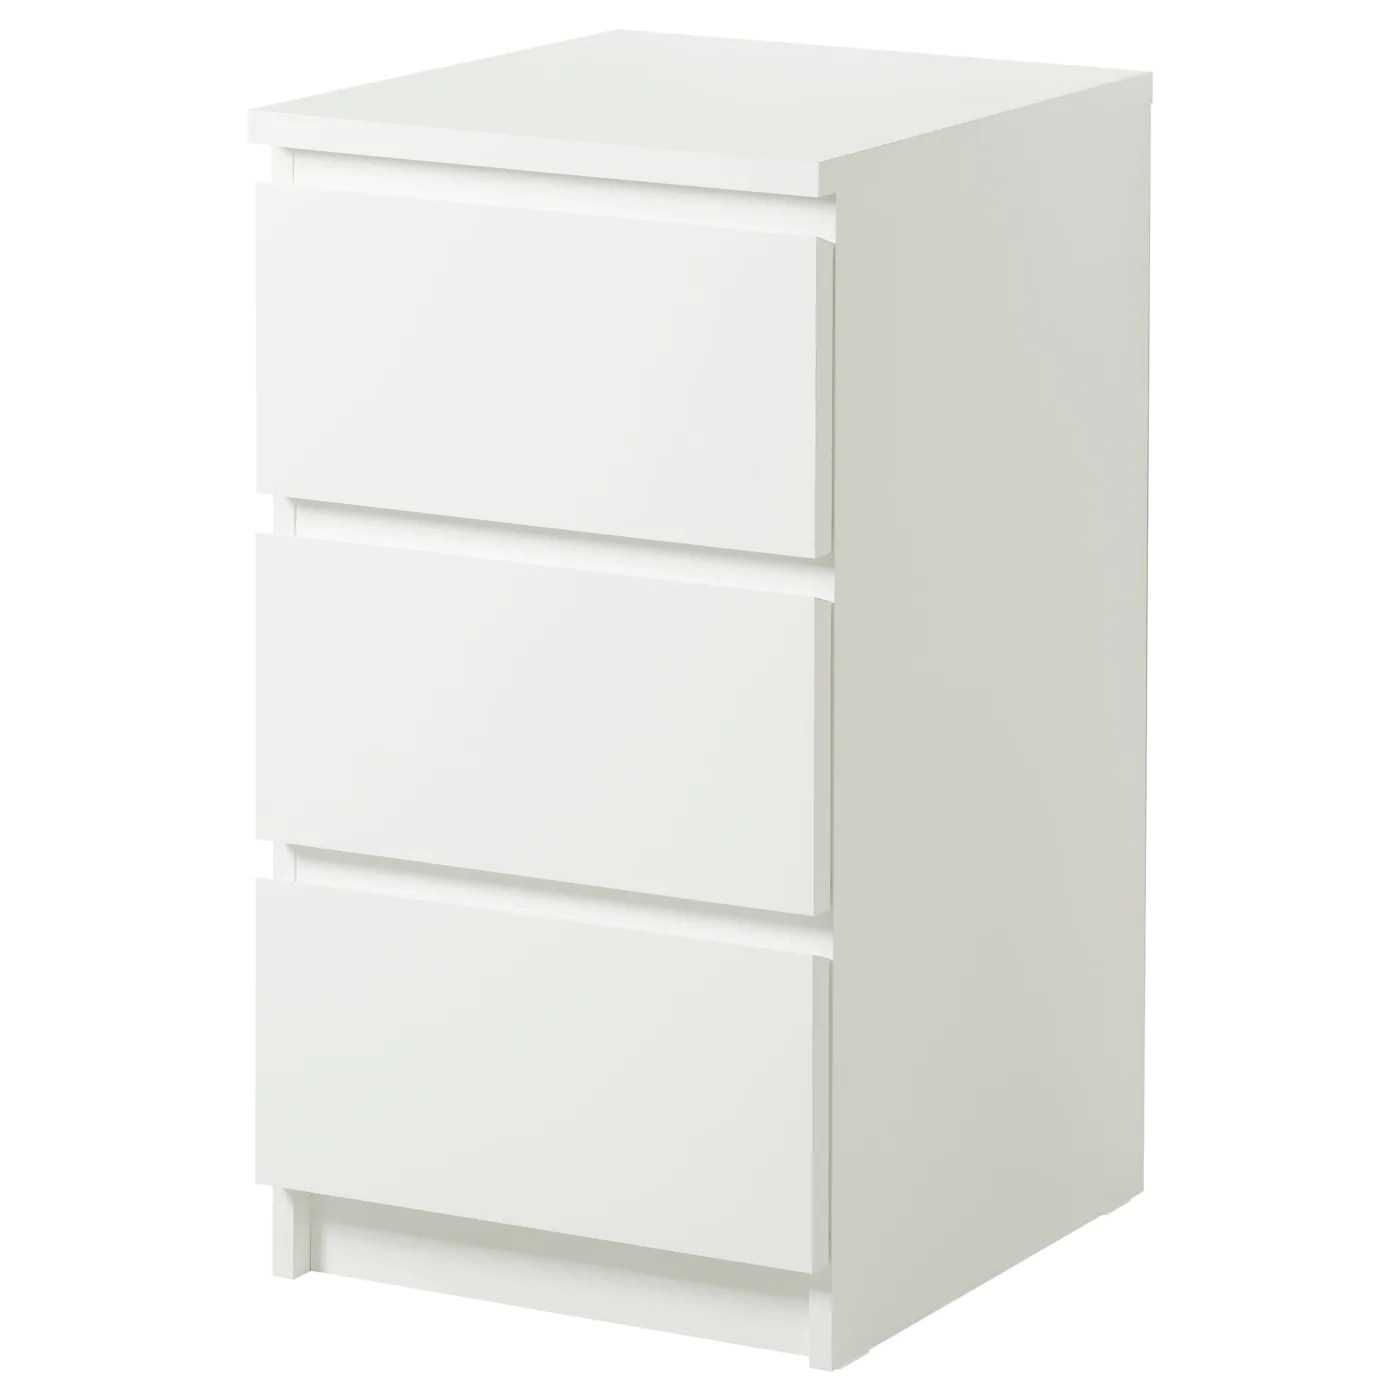 Kommode Weiß Hoch Malm Dressing Table White 120 X 41 Cm - Ikea